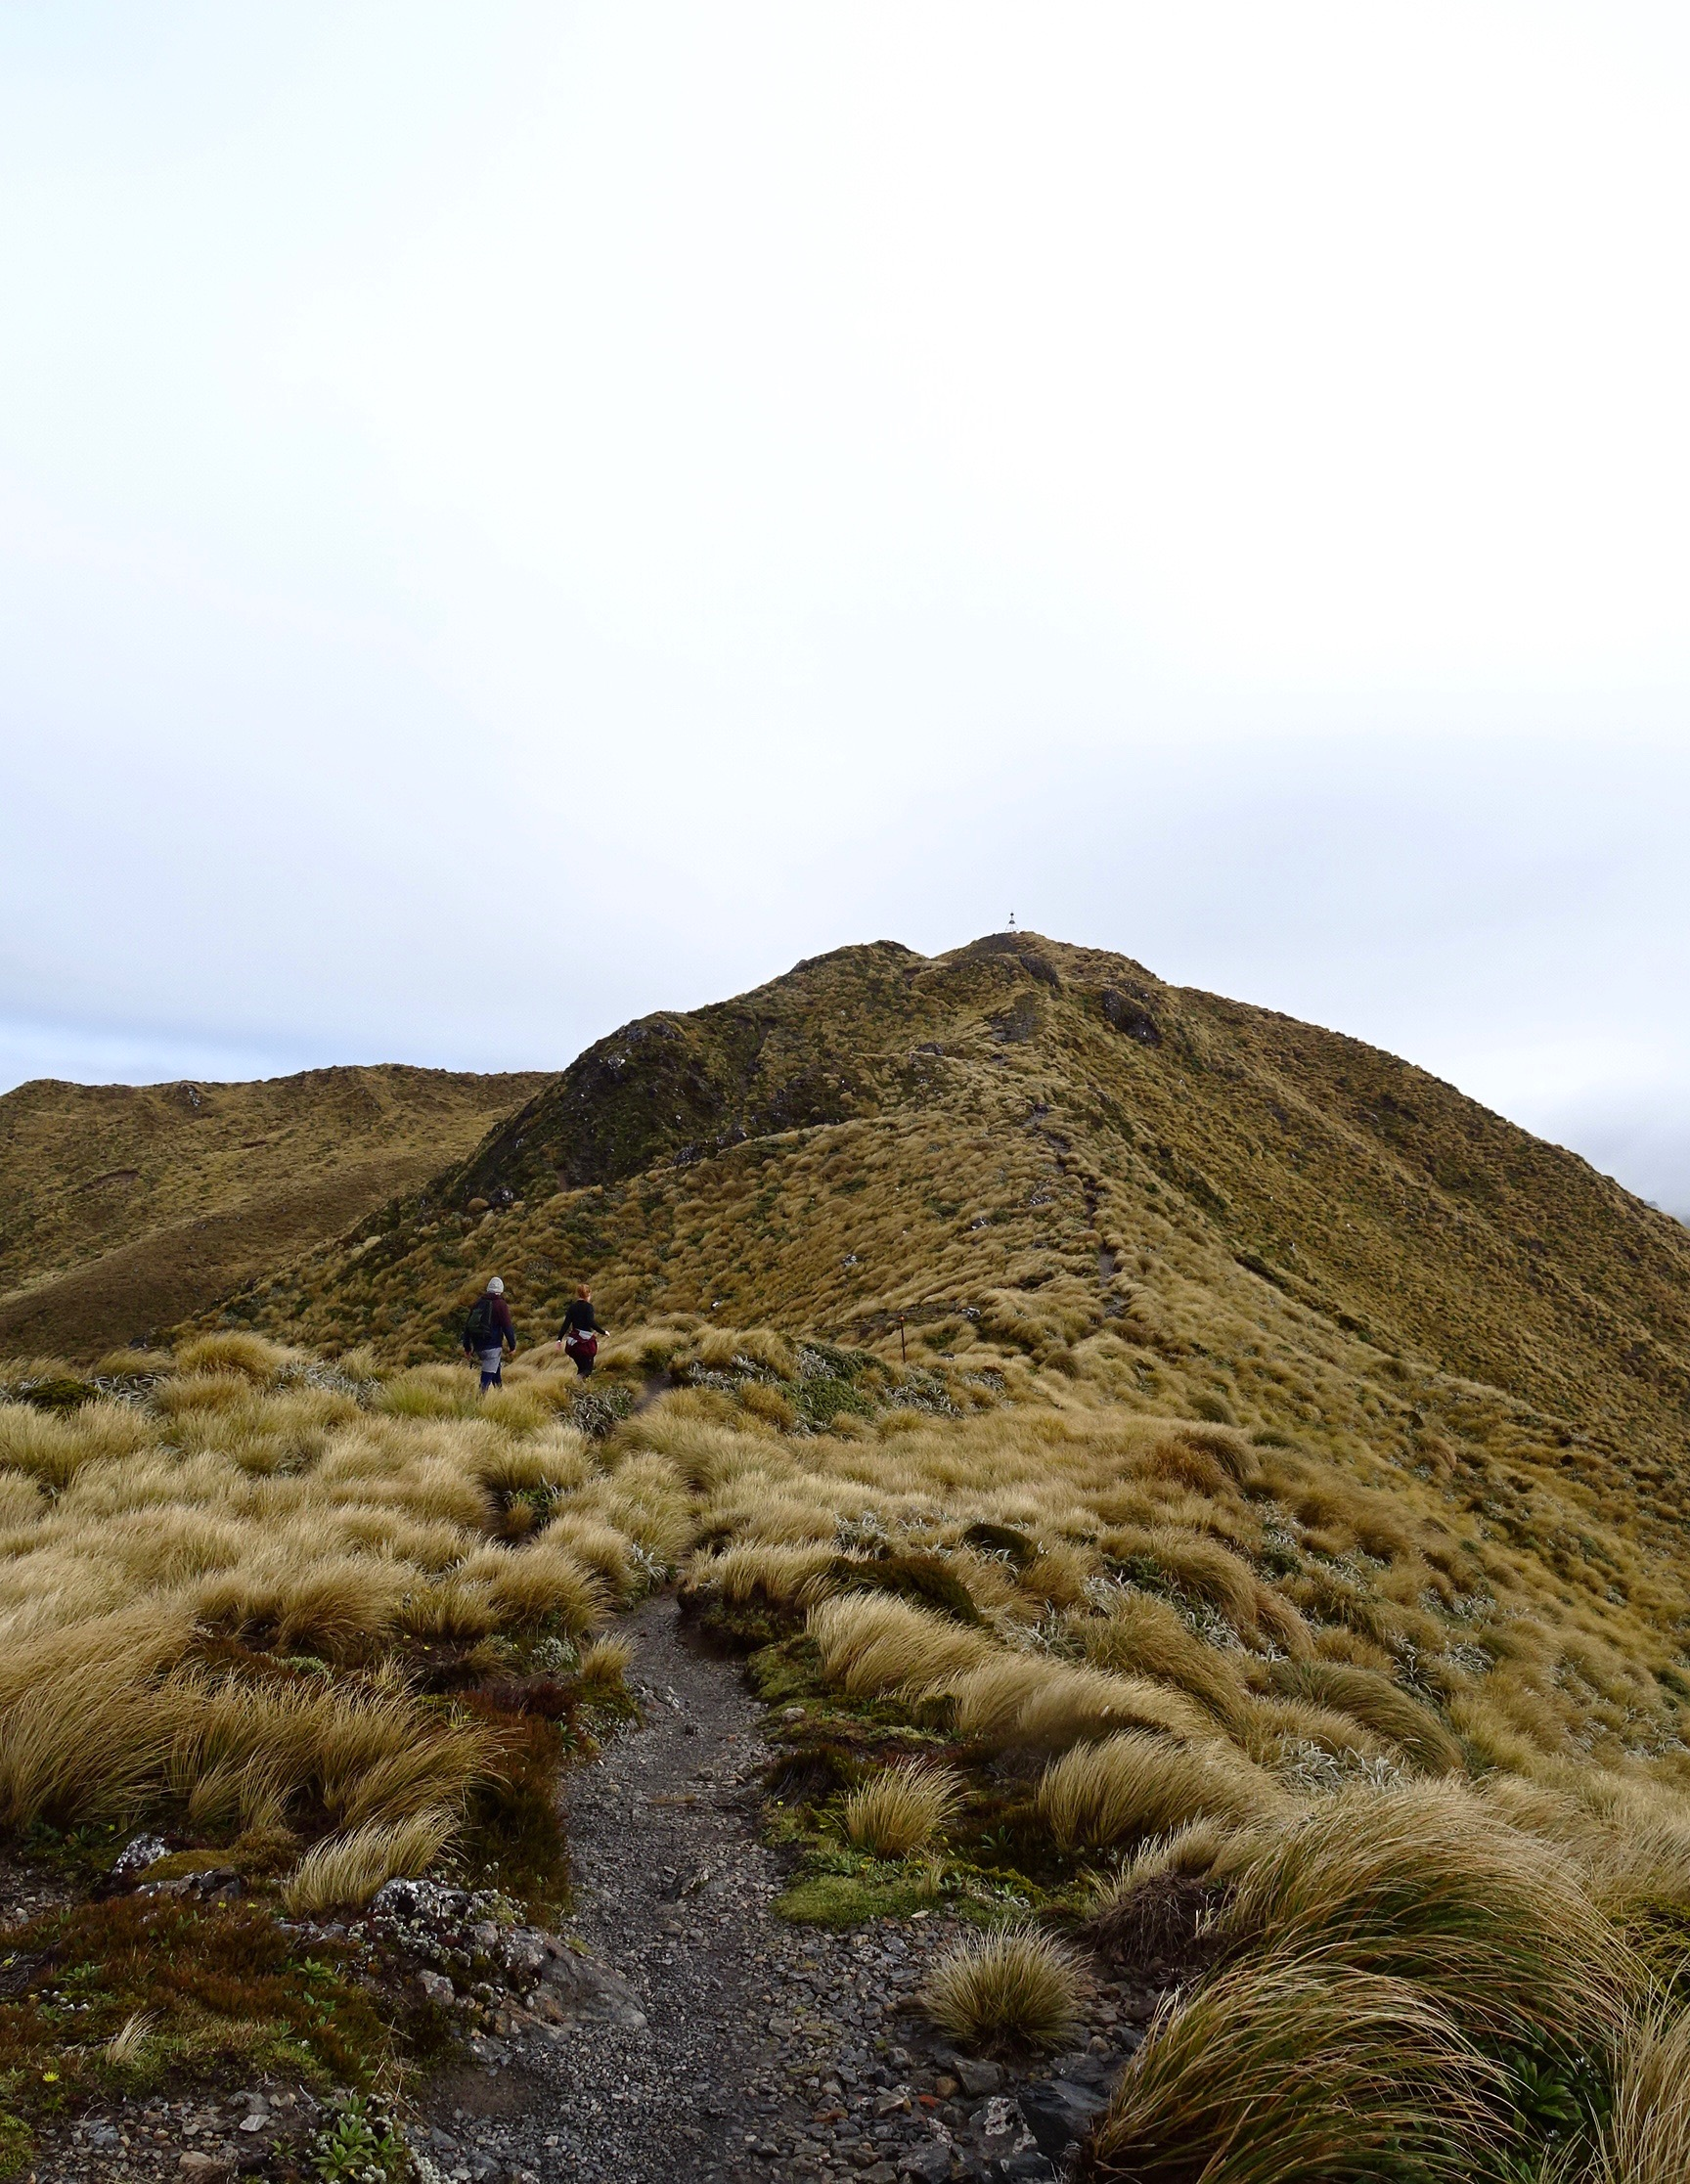 En route to the summit of Mount Holdsworth